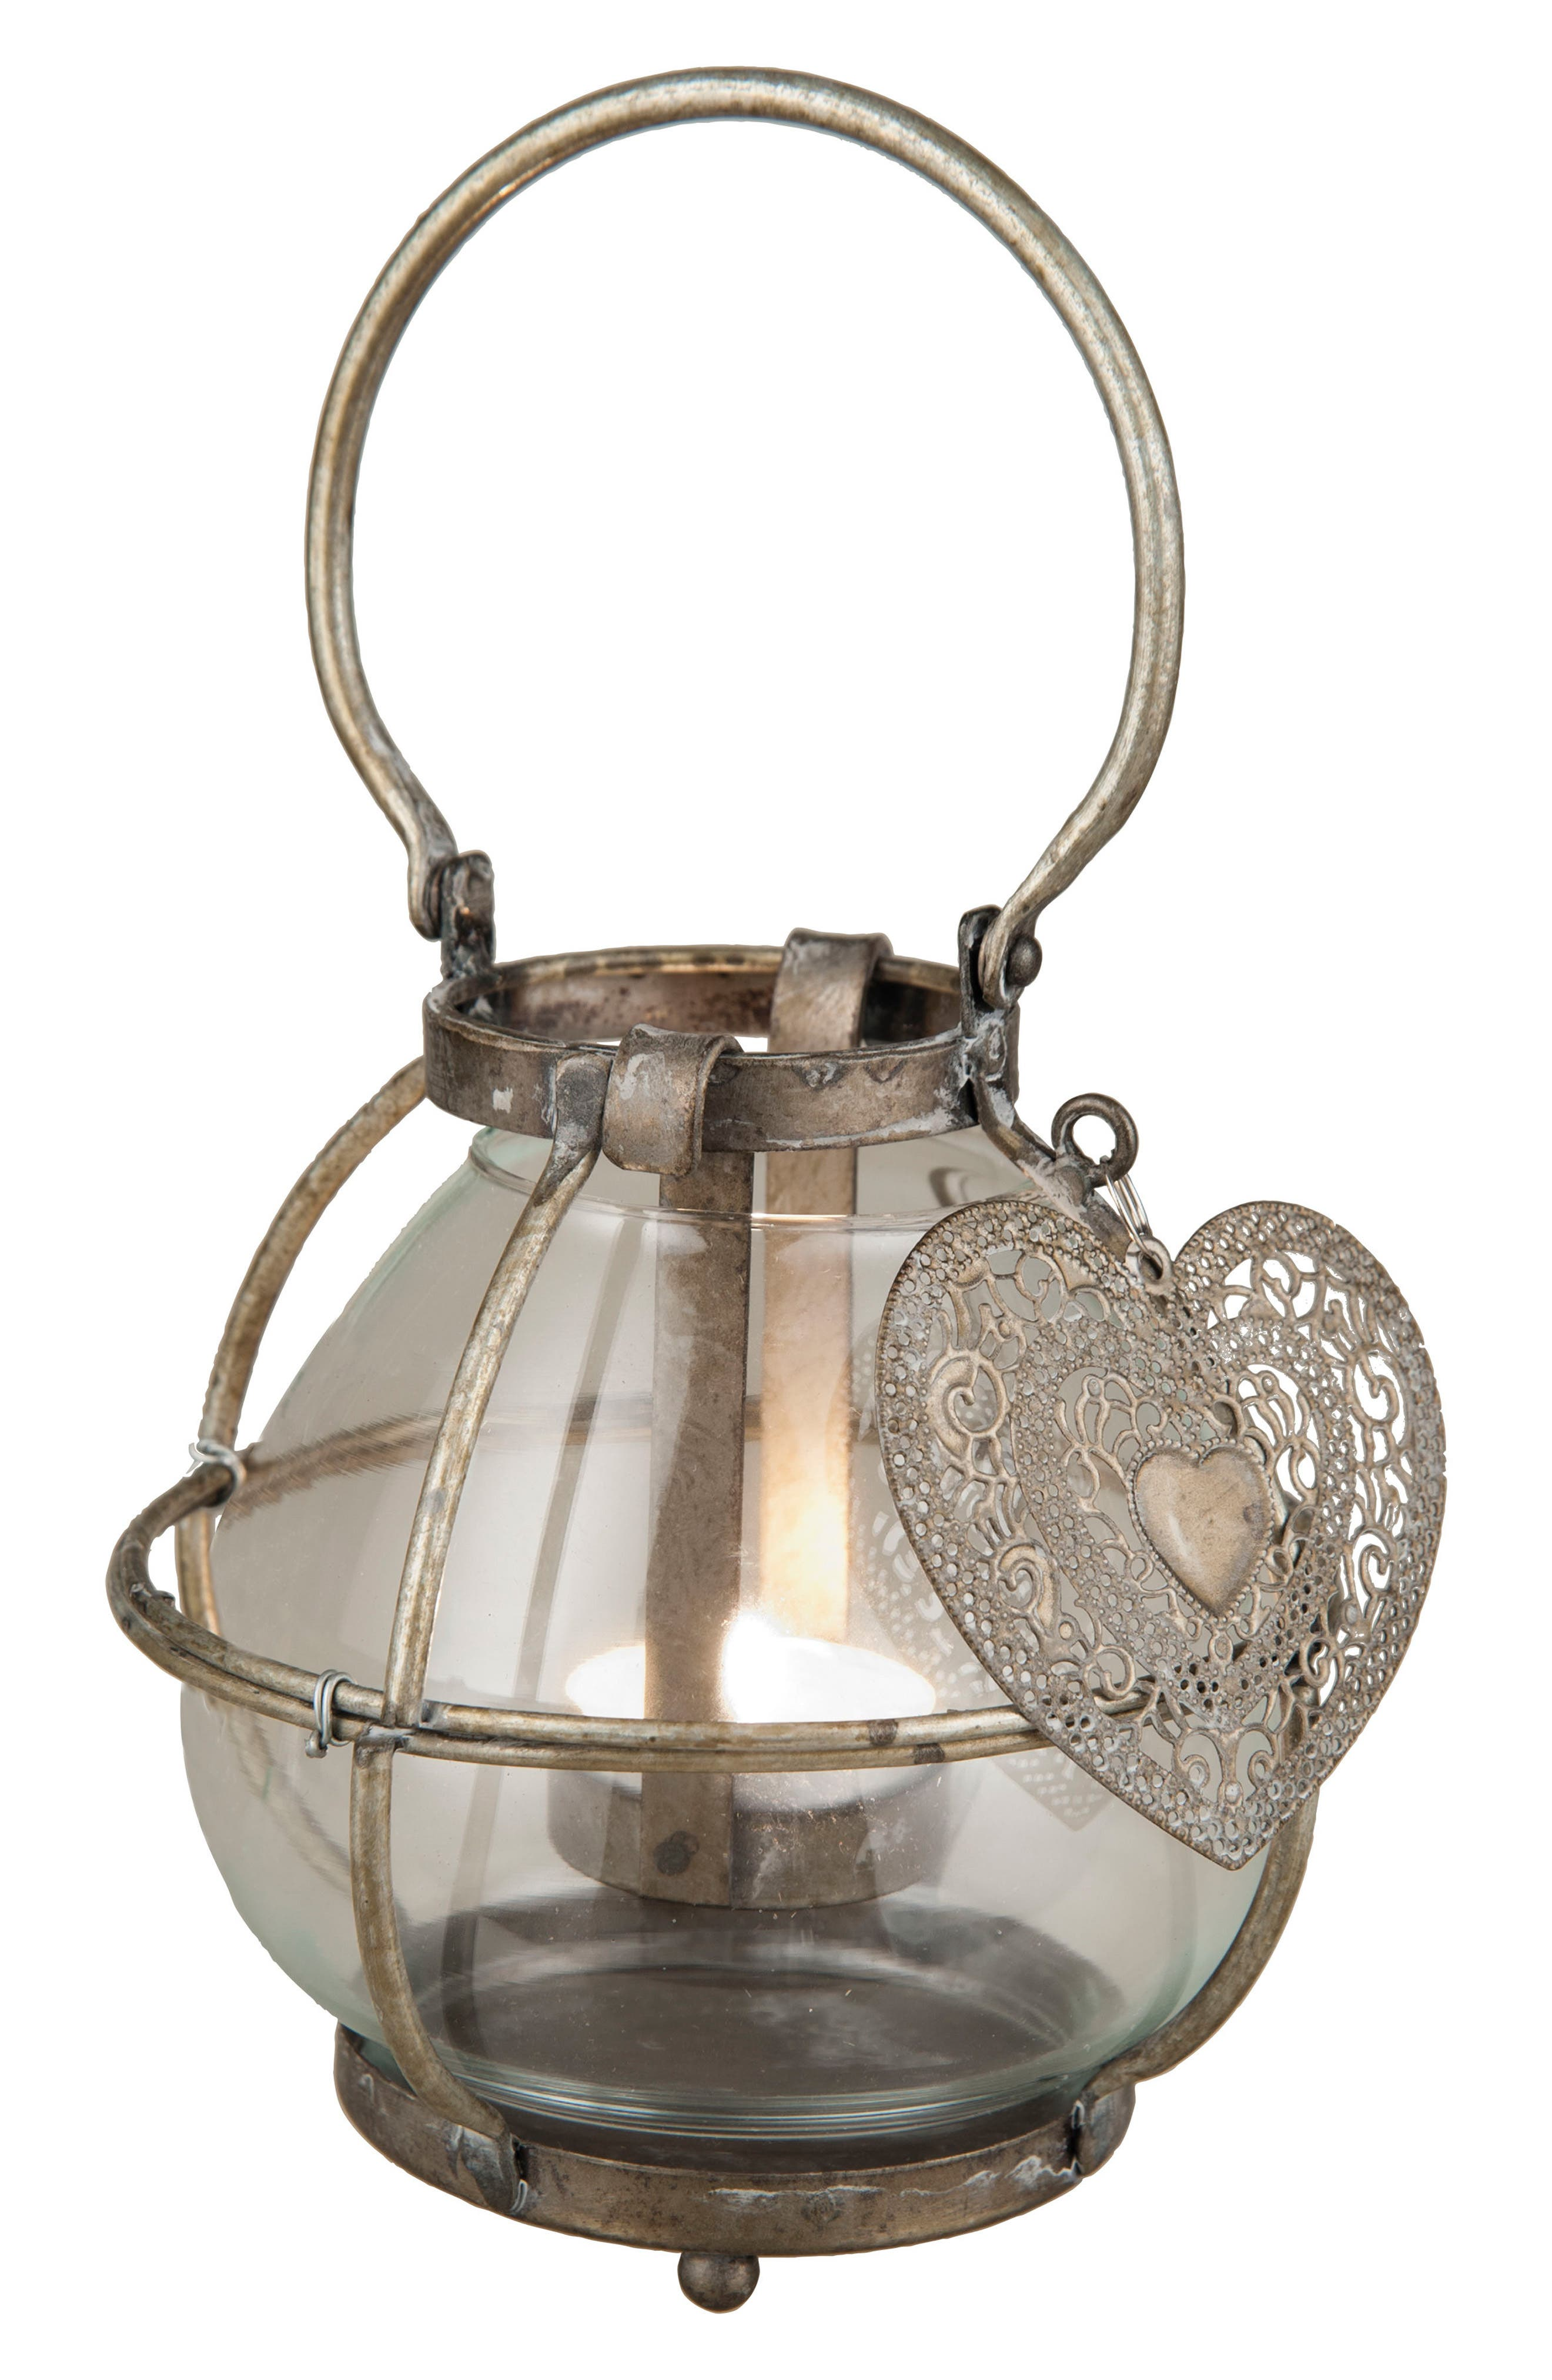 Main Image - Foreside With Love Lantern Candle Holder